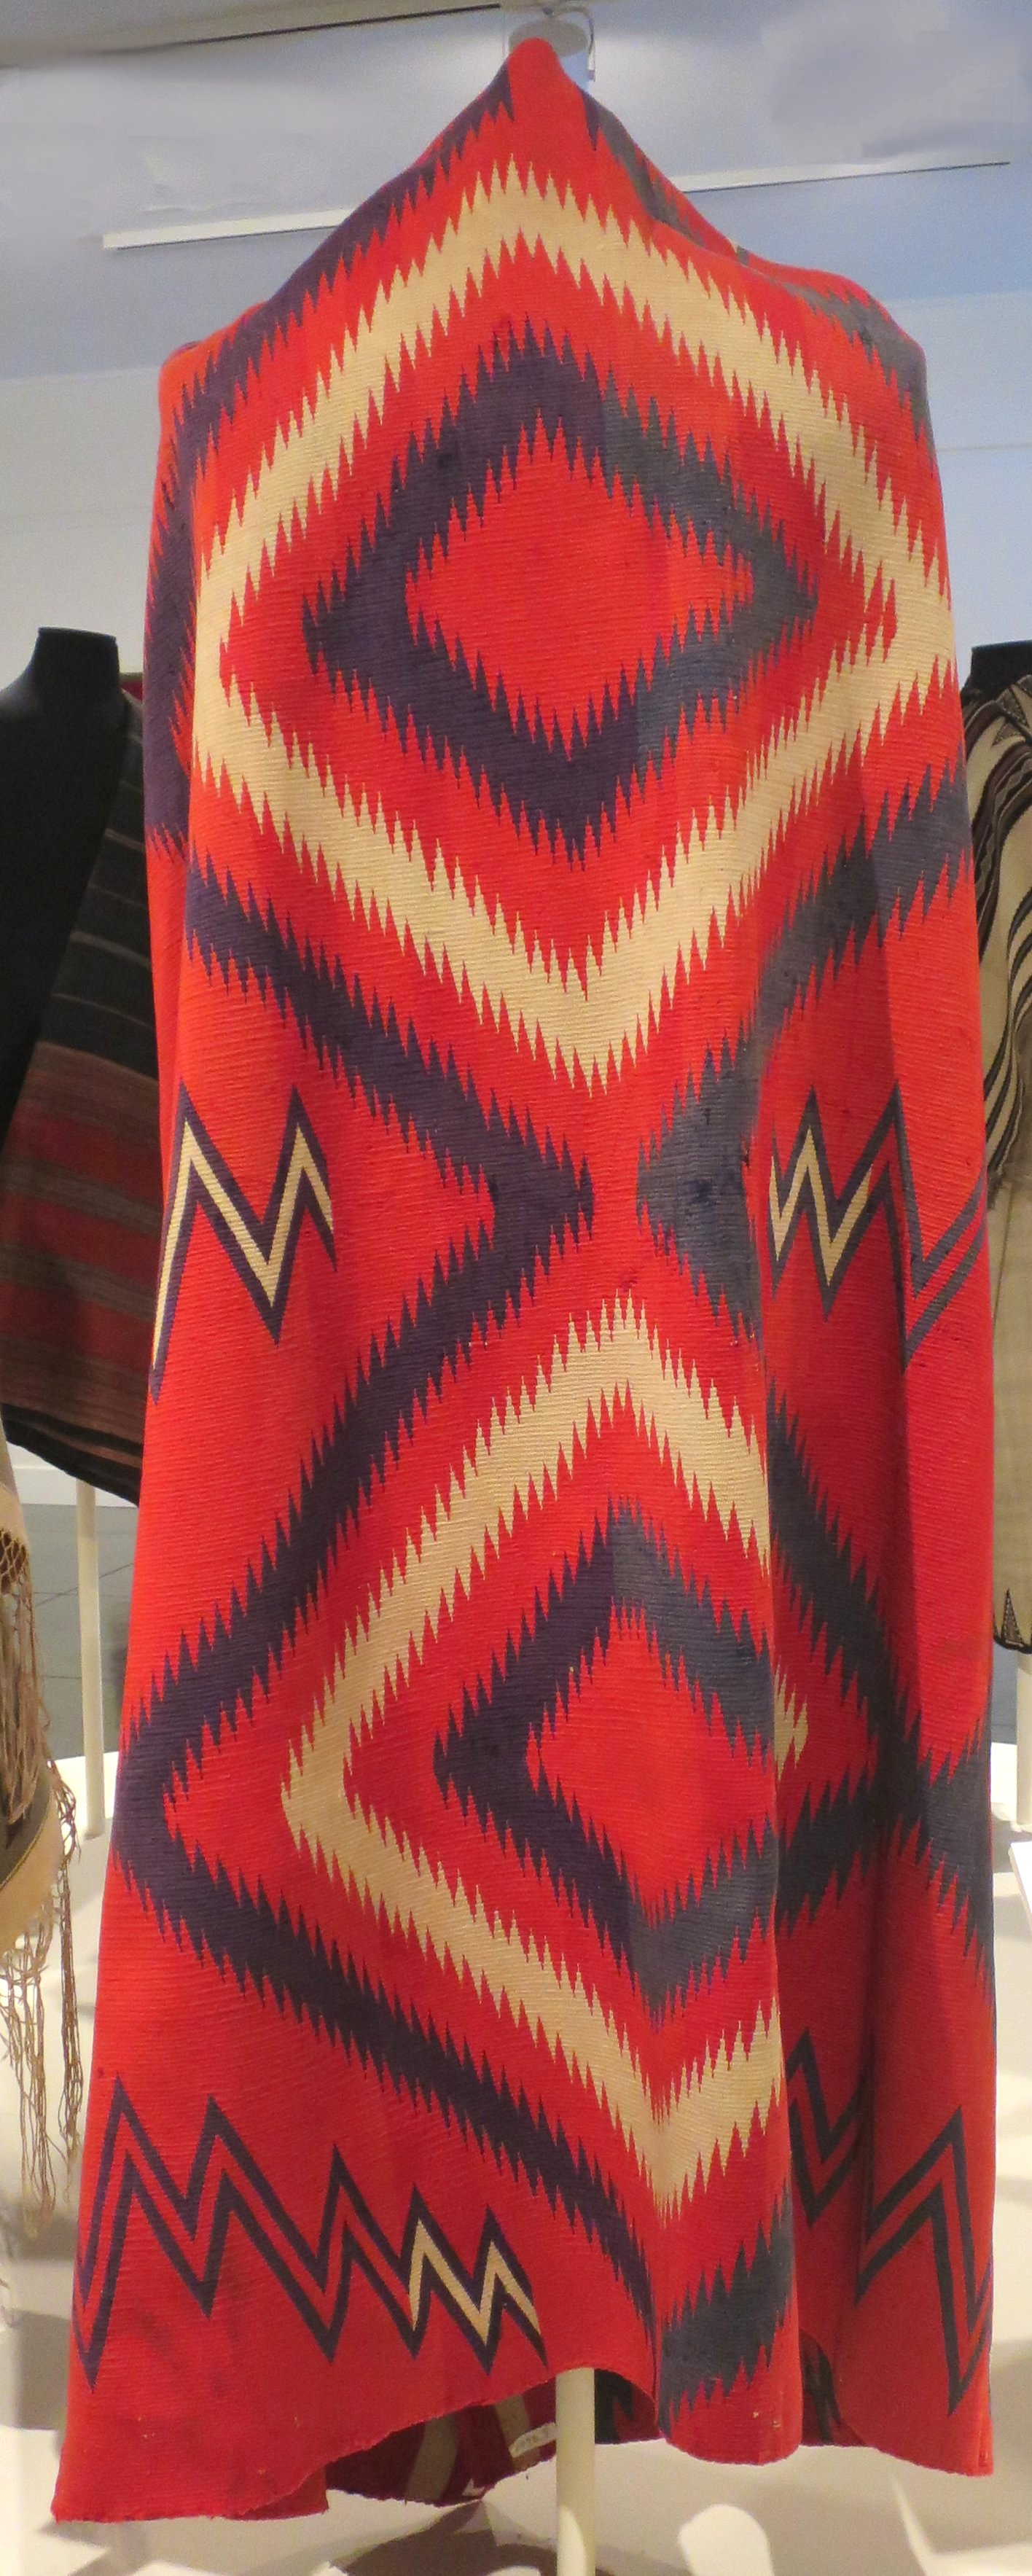 File:Navajo blanket, 1875-1885, Honolulu Museum of Art 5498.7.JPG ...